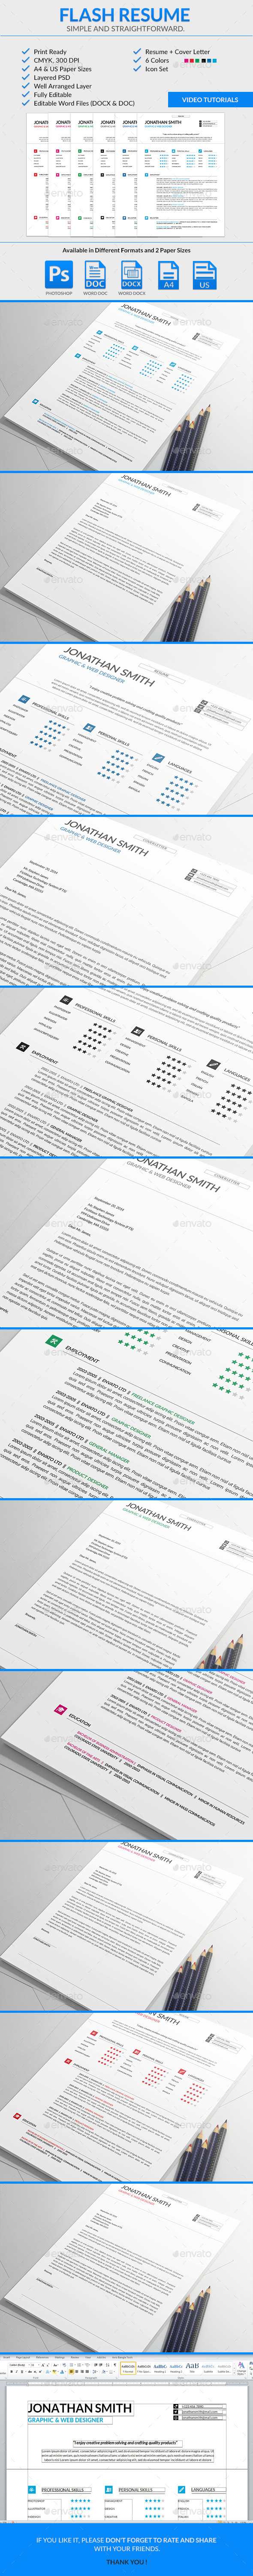 Flash Resume Template - Resumes Stationery